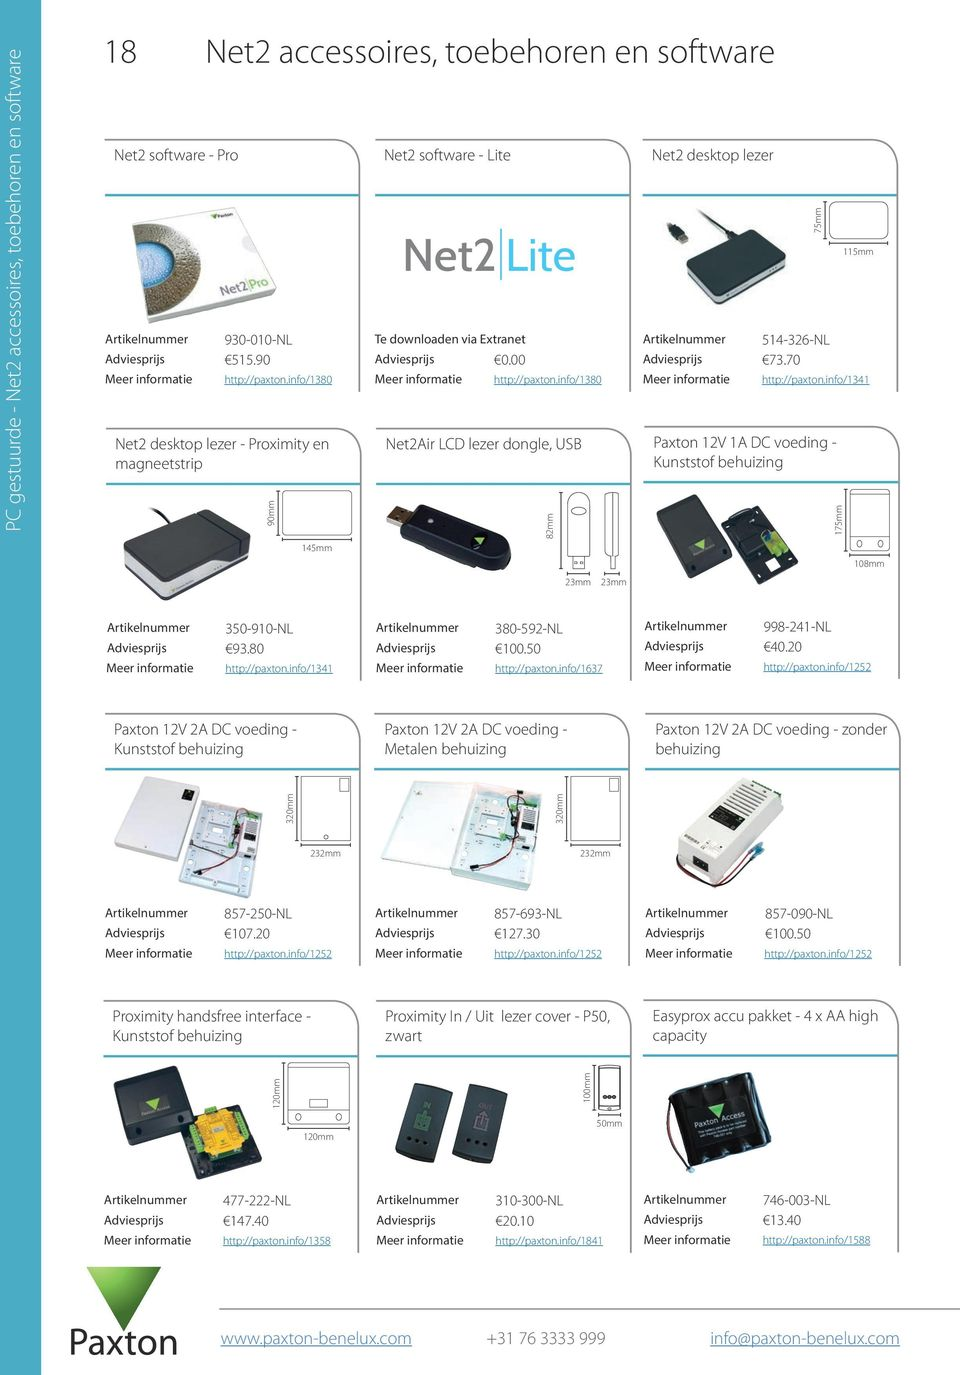 info/1380 Net2Air LCD lezer dongle, USB 82mm 23mm 23mm Net2 desktop lezer 115mm 514-326-NL 73.70 http://paxton.